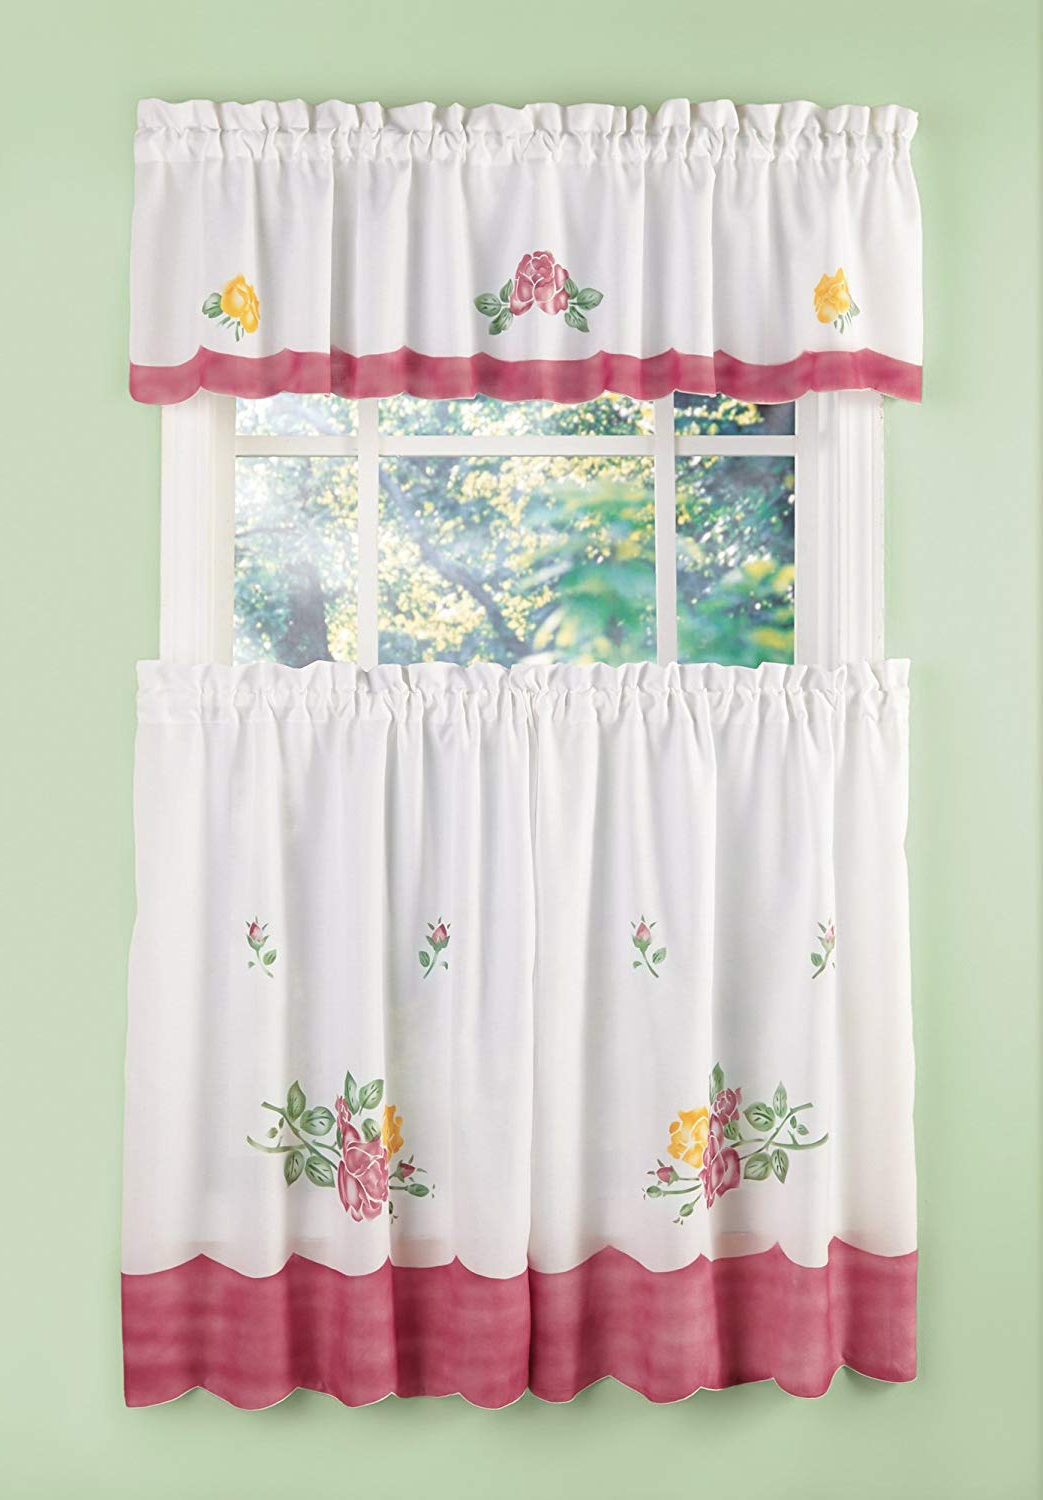 Most Recent Amazon: Kitchen Curtains – Cafe Curtain Set, 3 Piece Intended For Microfiber 3 Piece Kitchen Curtain Valance And Tiers Sets (Gallery 11 of 20)